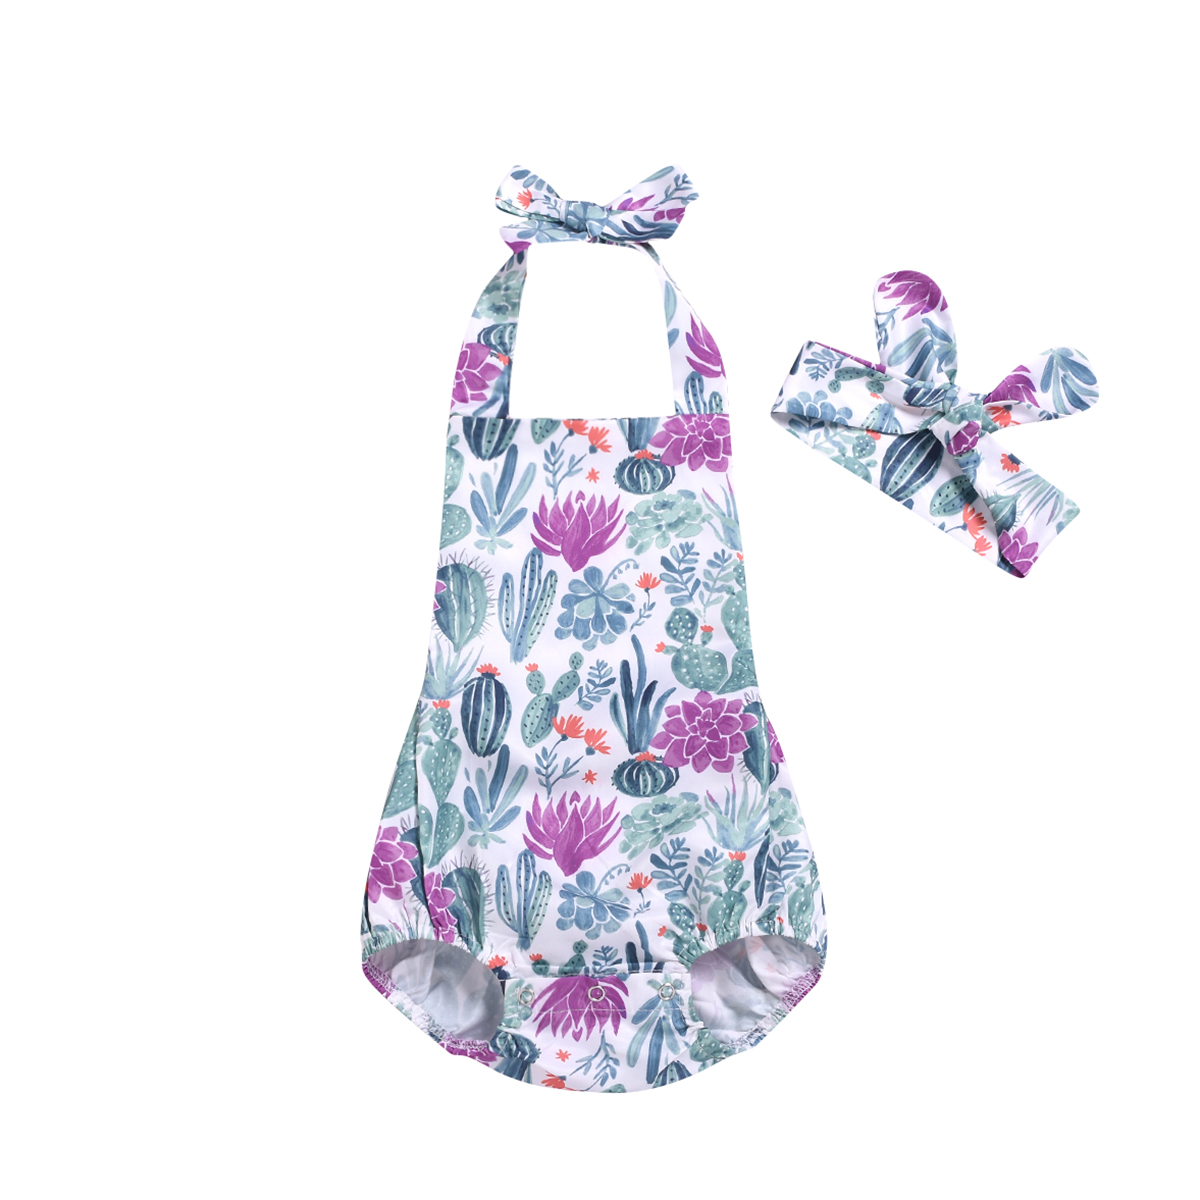 2019 New Cotton Newborn Baby Girls   Rompers   Cactus Flower Infant Girls Jumpsuit Playsuit Summer Sleeveless Clothing